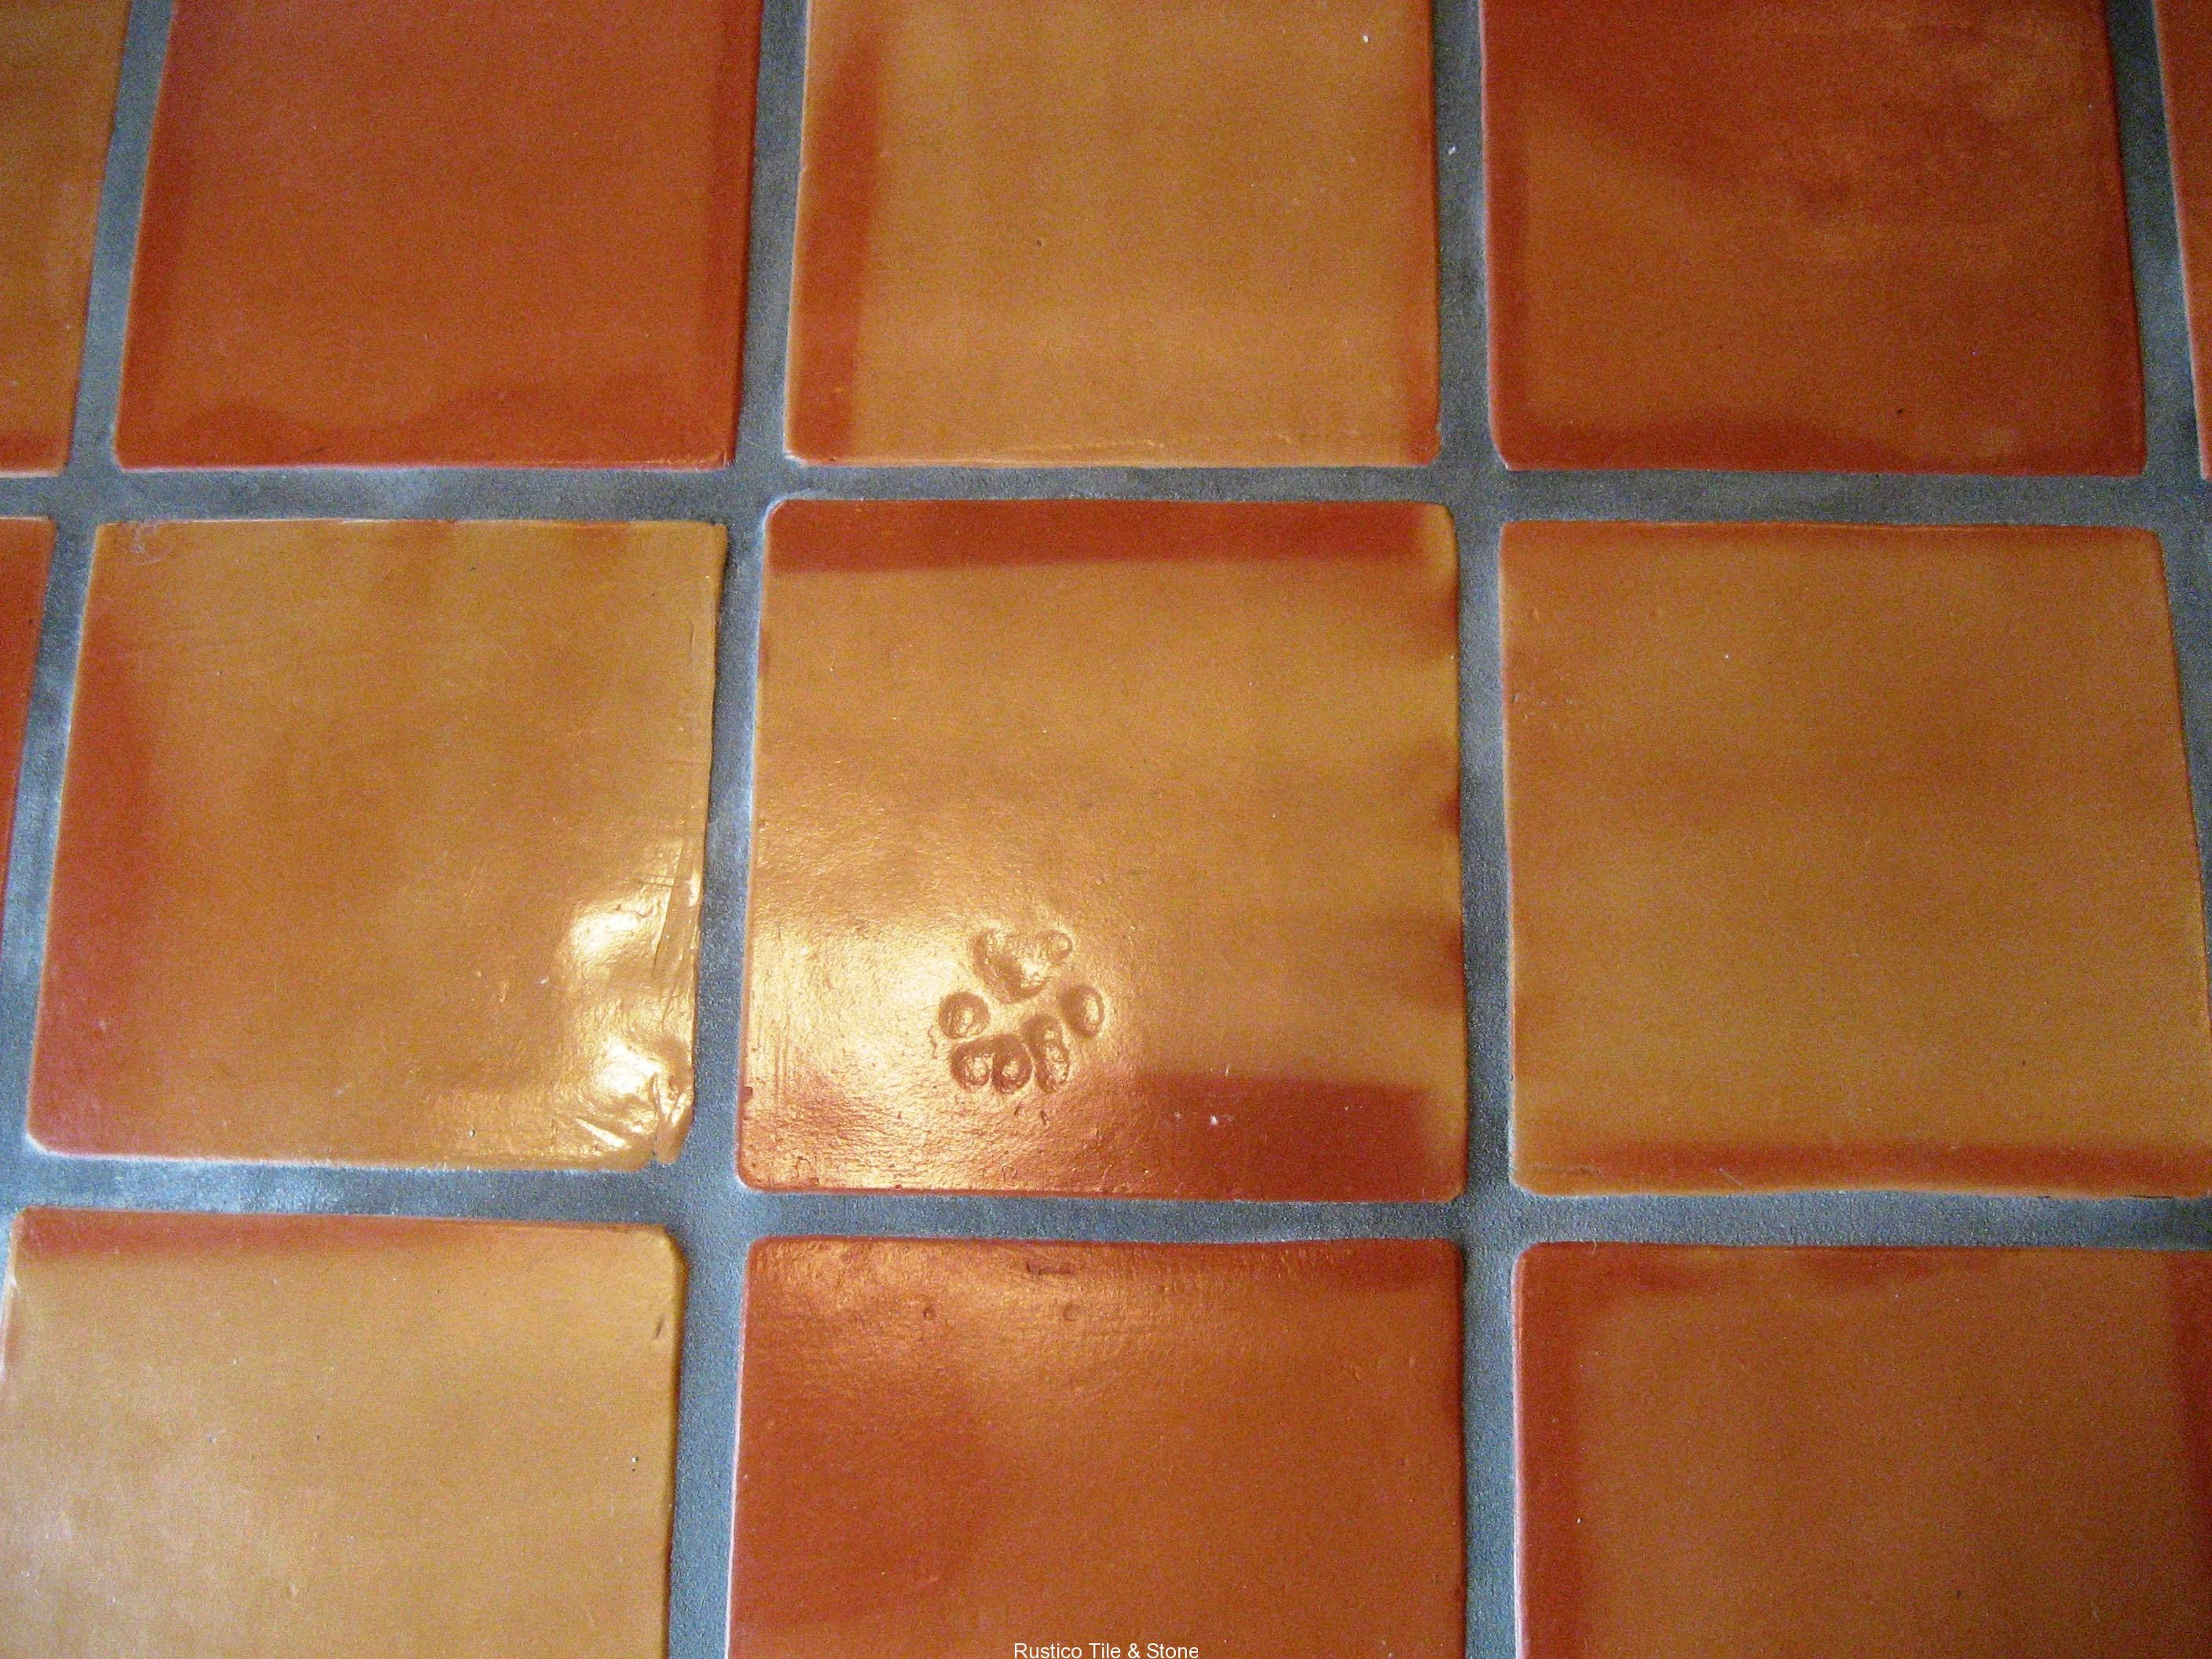 Paw Print Shown On A Square Clay Tile Floor Pinterest